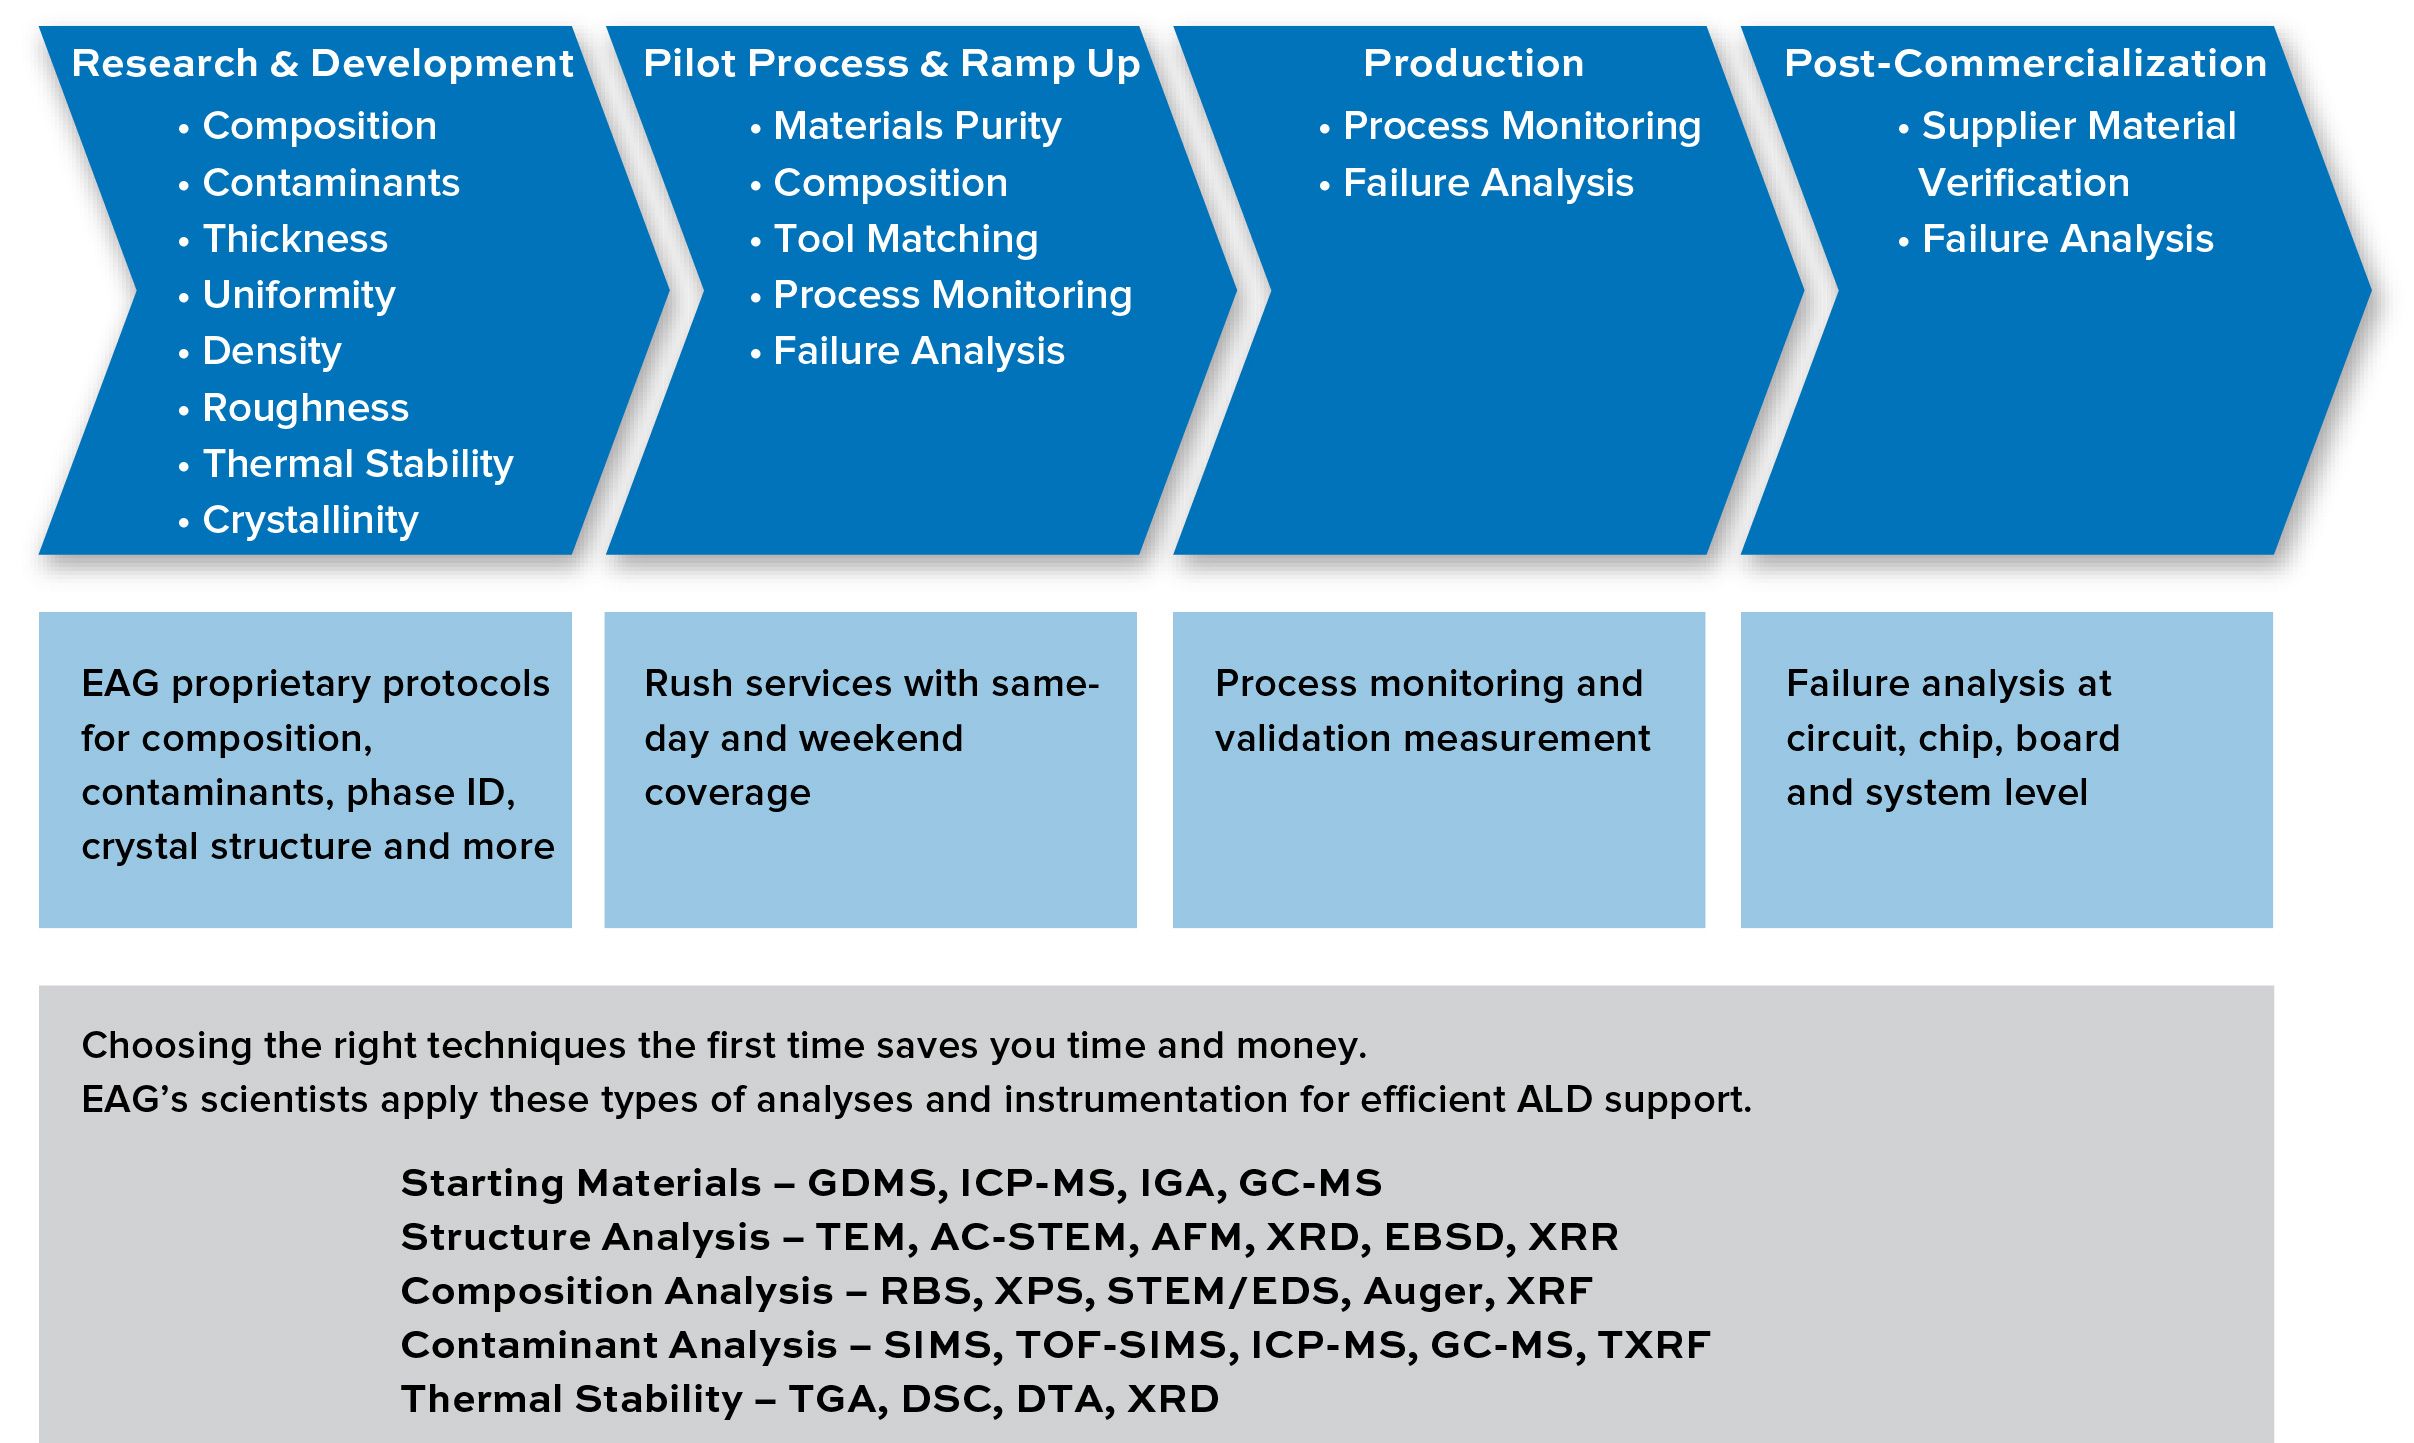 EAG services supporting ALD (atomic Layer deposition) analytical needs